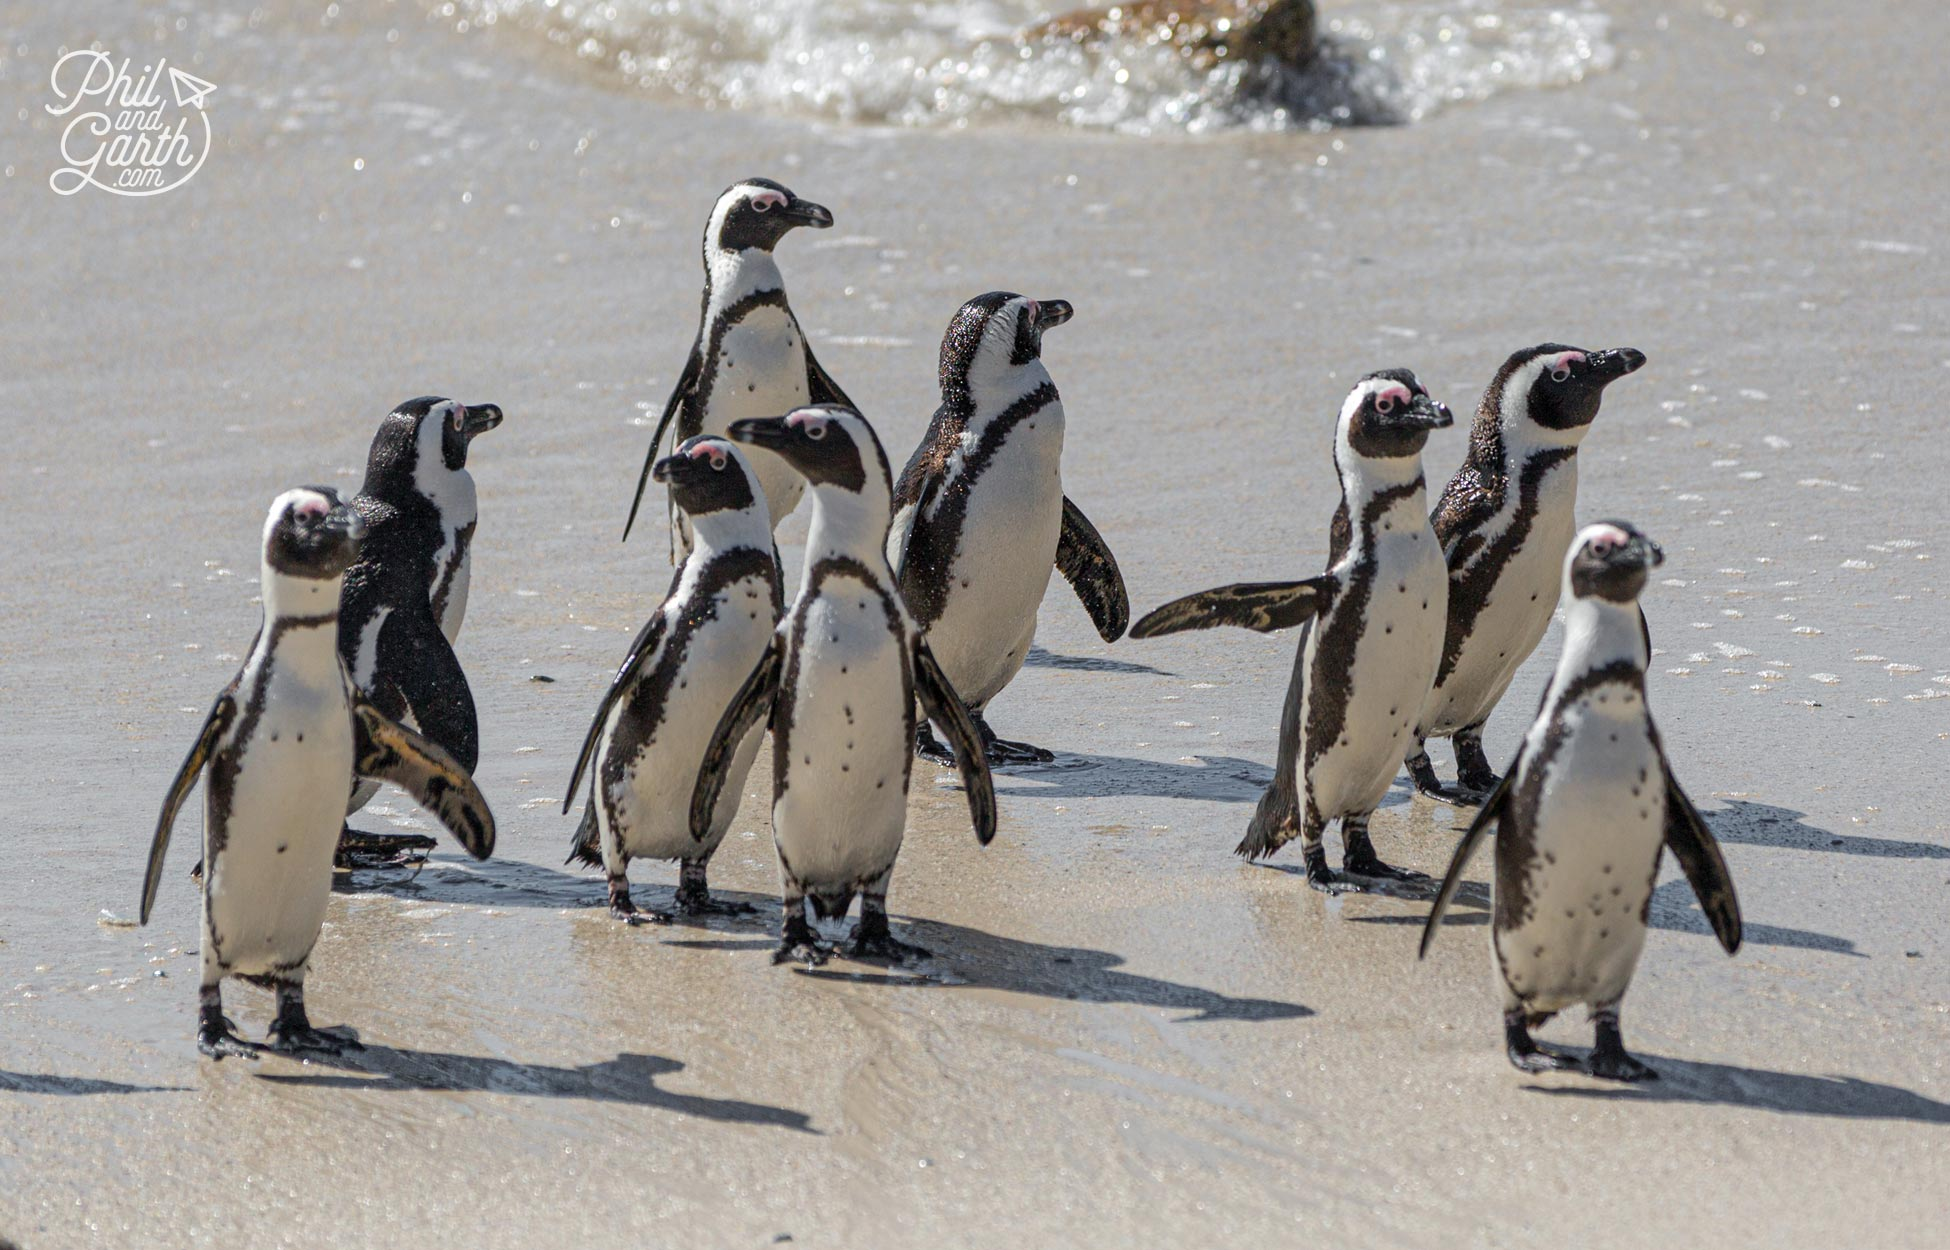 A group of African penguins return to the beach after taking a dip